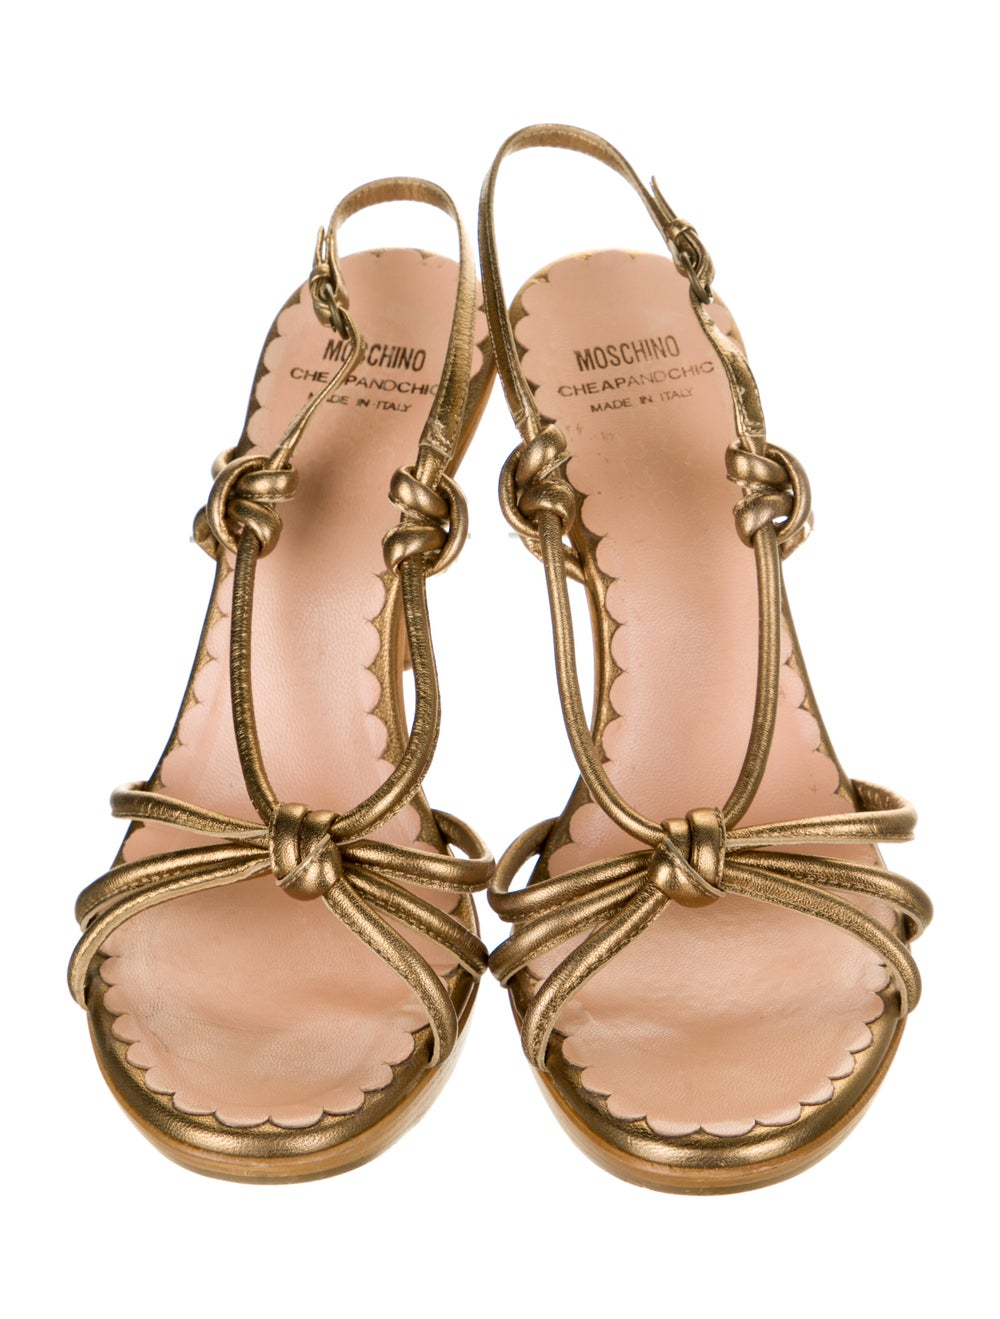 Moschino Cheap and Chic Leather Slingback Sandals - image 3